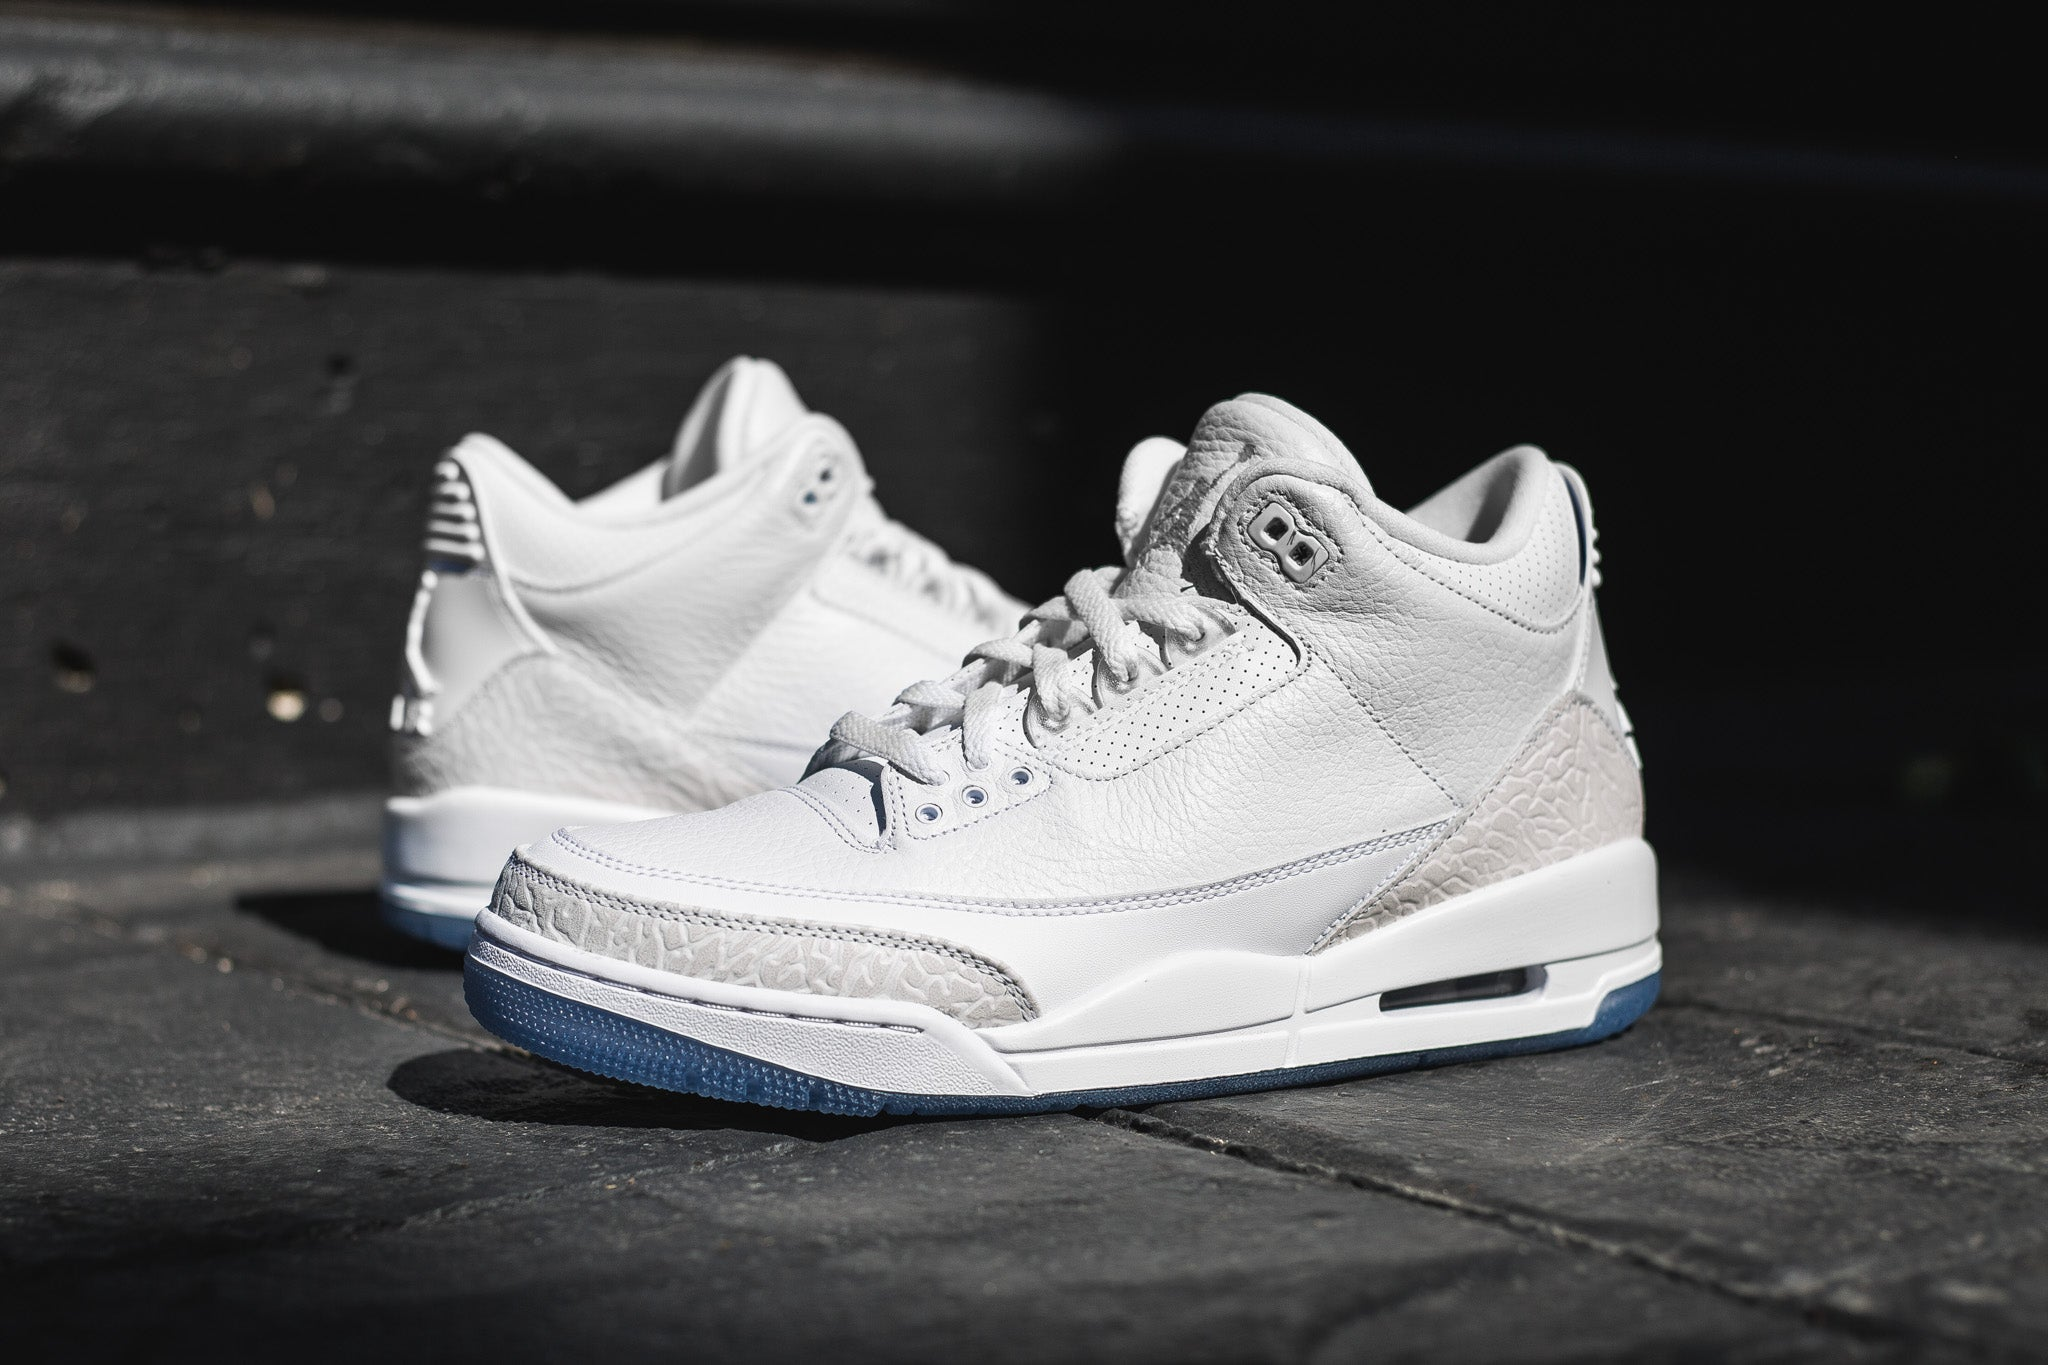 429a9eec7bae04 ... best price the air jordan 3 retro pure white is one of the cleanest  jumpman silhouettes